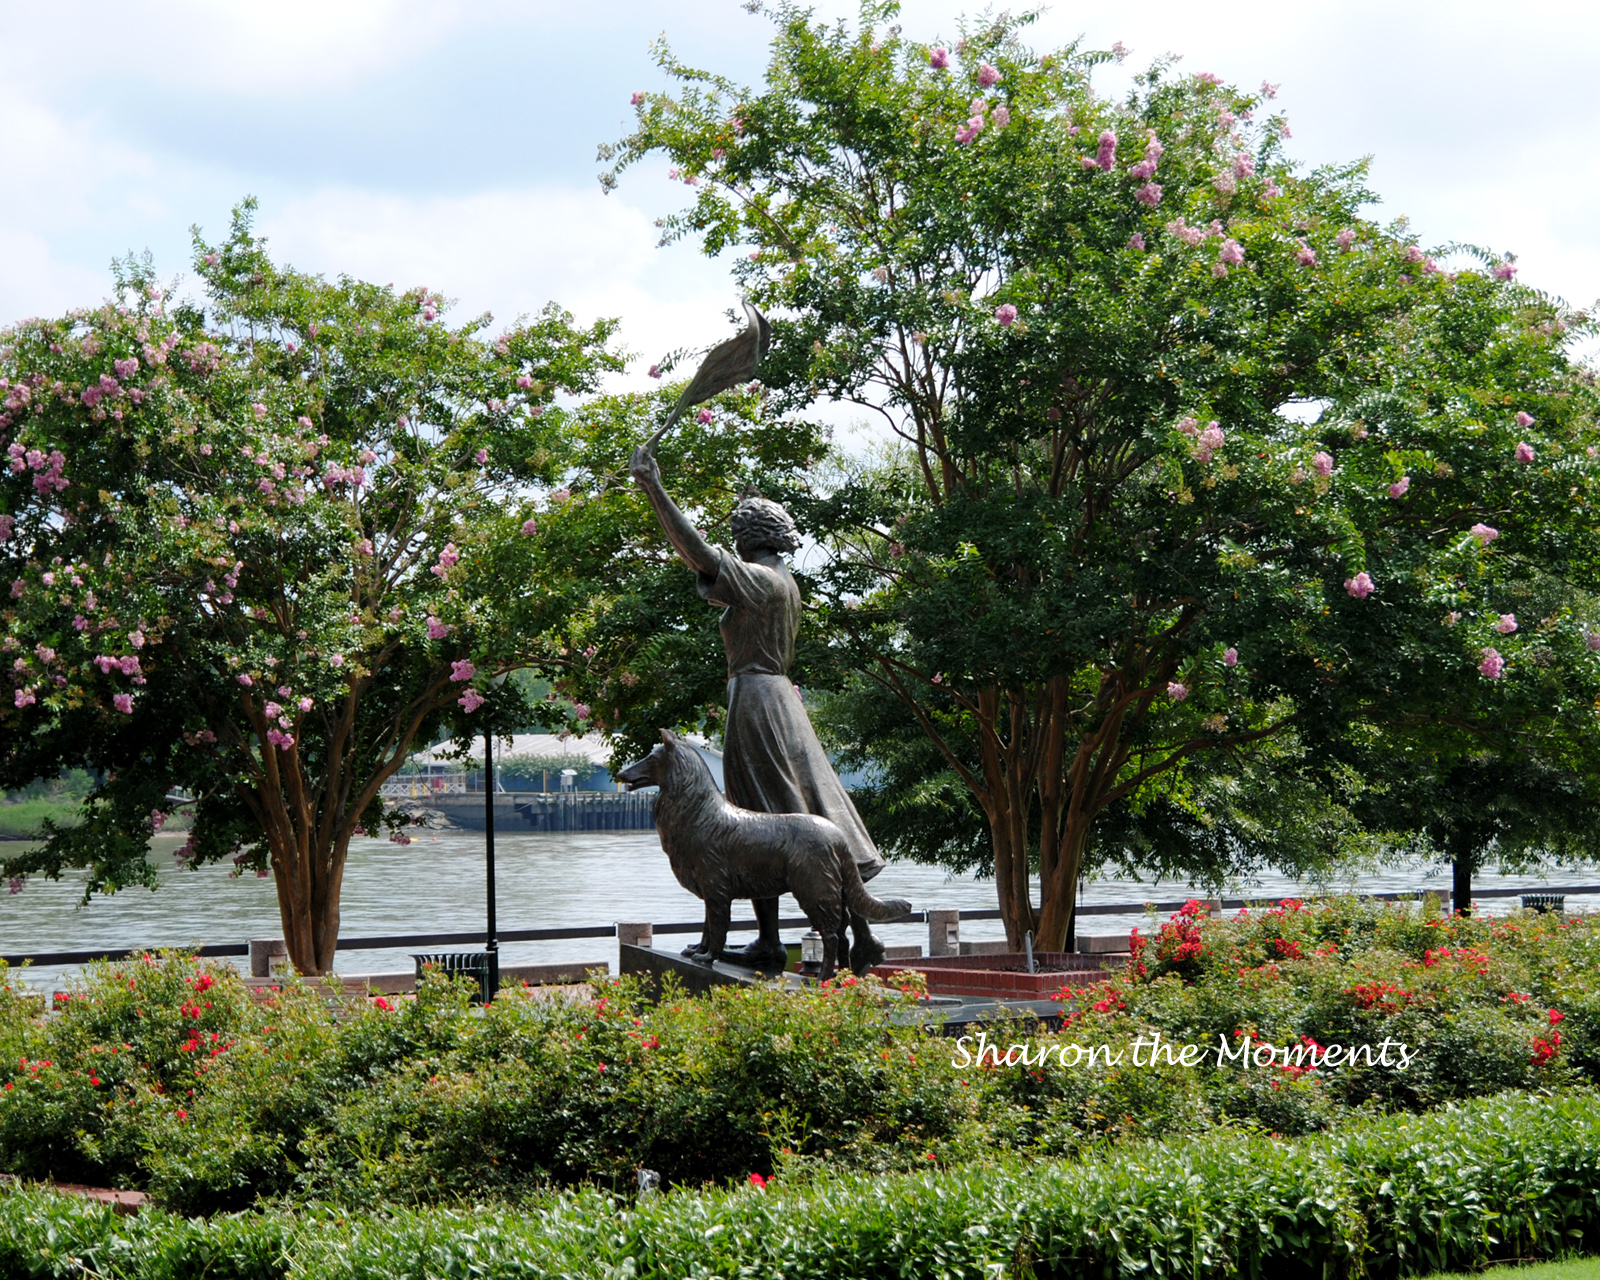 Historic Old Savannah Trolley Tours|Sharon the Moments Blog